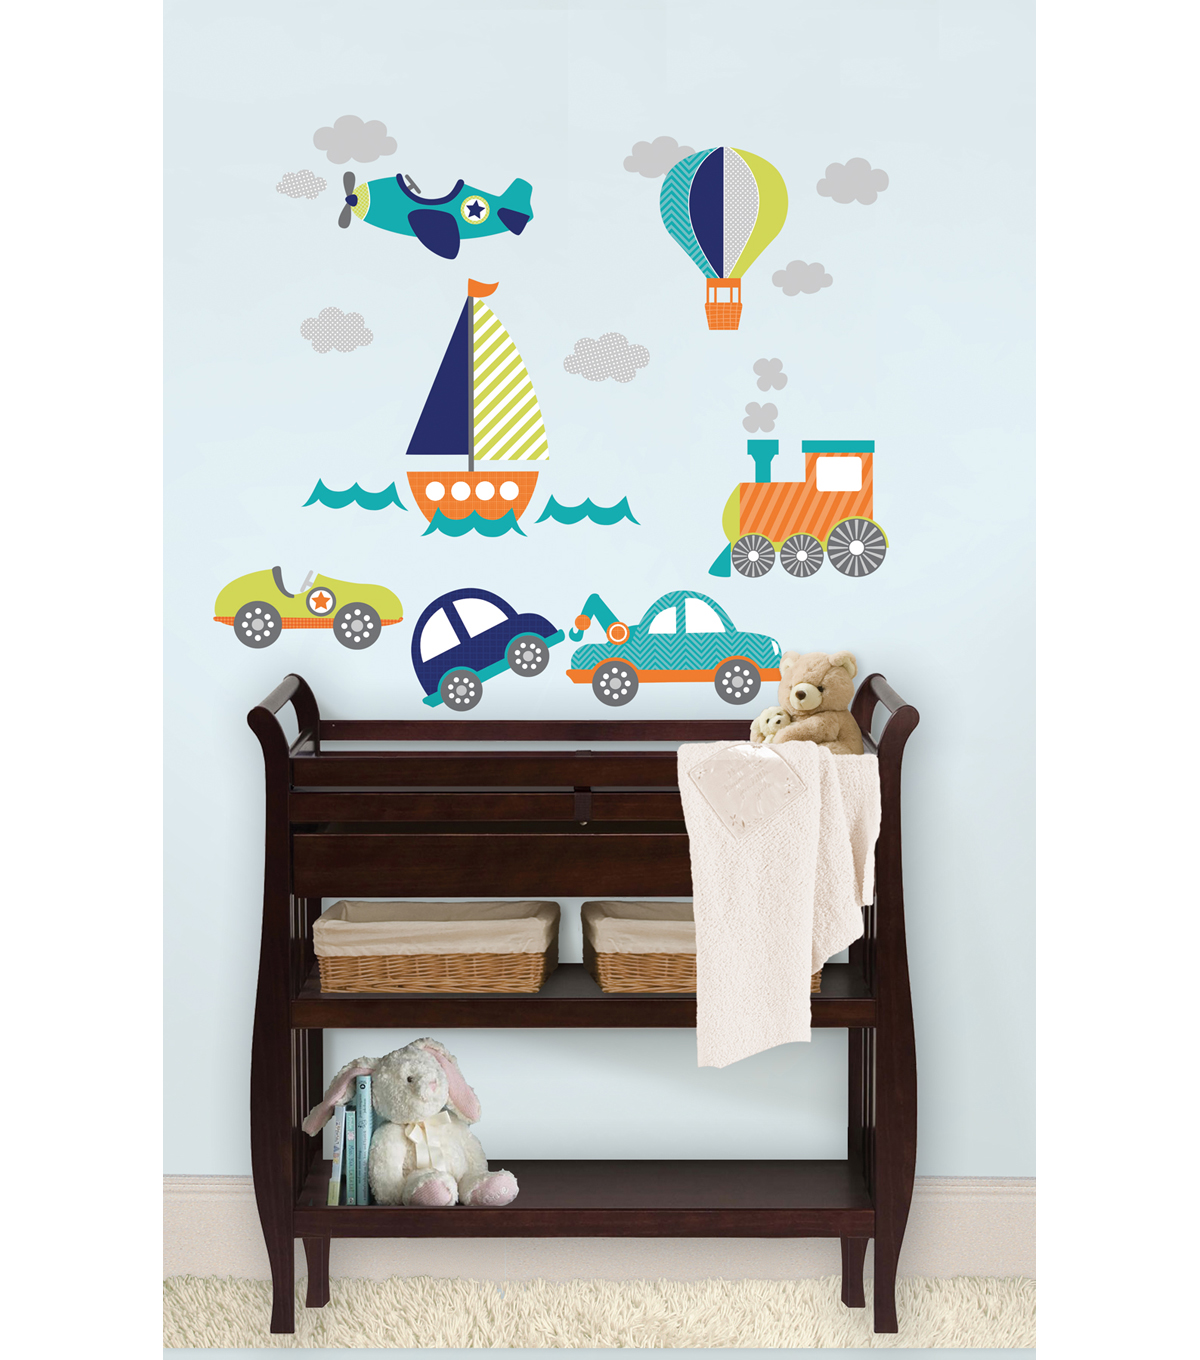 Wall Pops On the Go Small Wall Art Decal Kit, 19 Piece Set